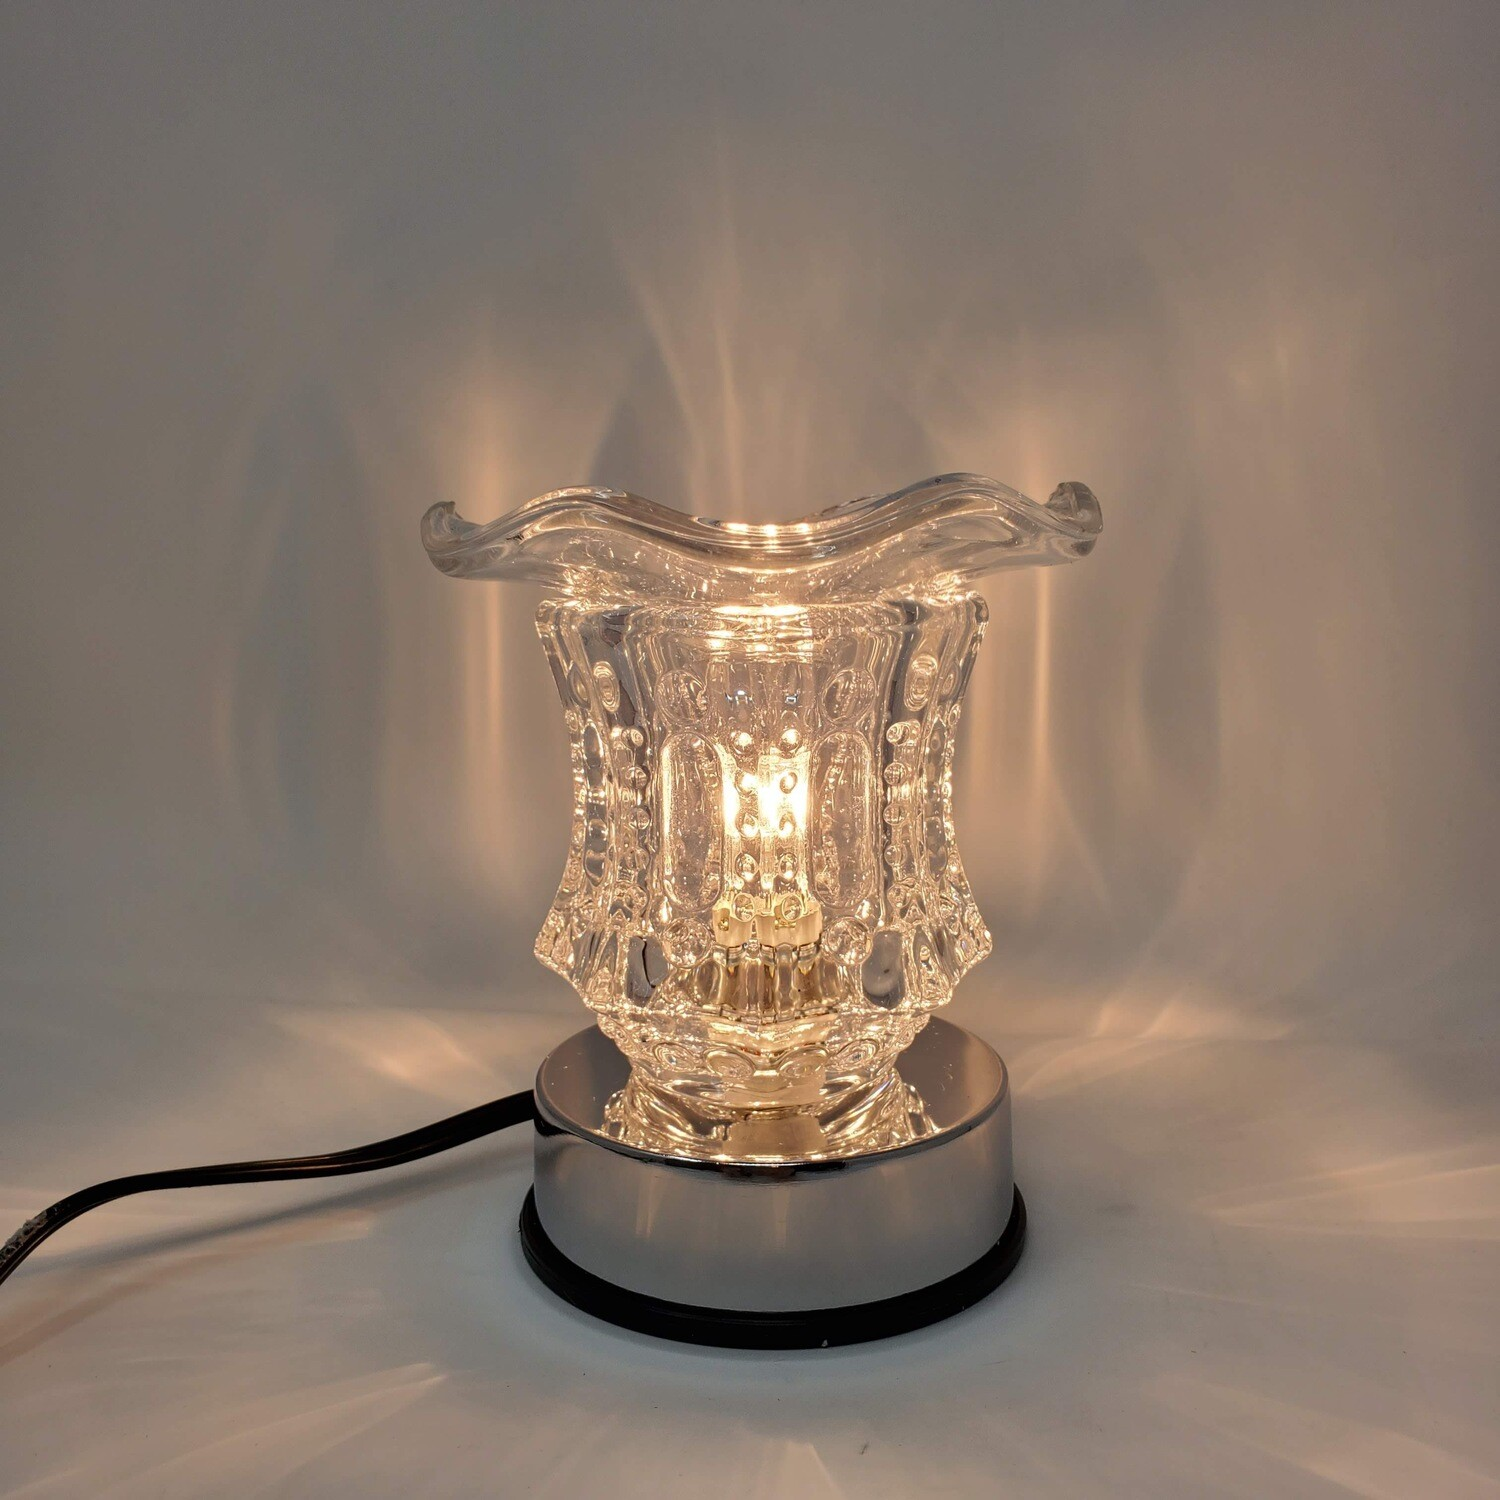 CLEAR VINTAGE SOLID TOUCH LAMP